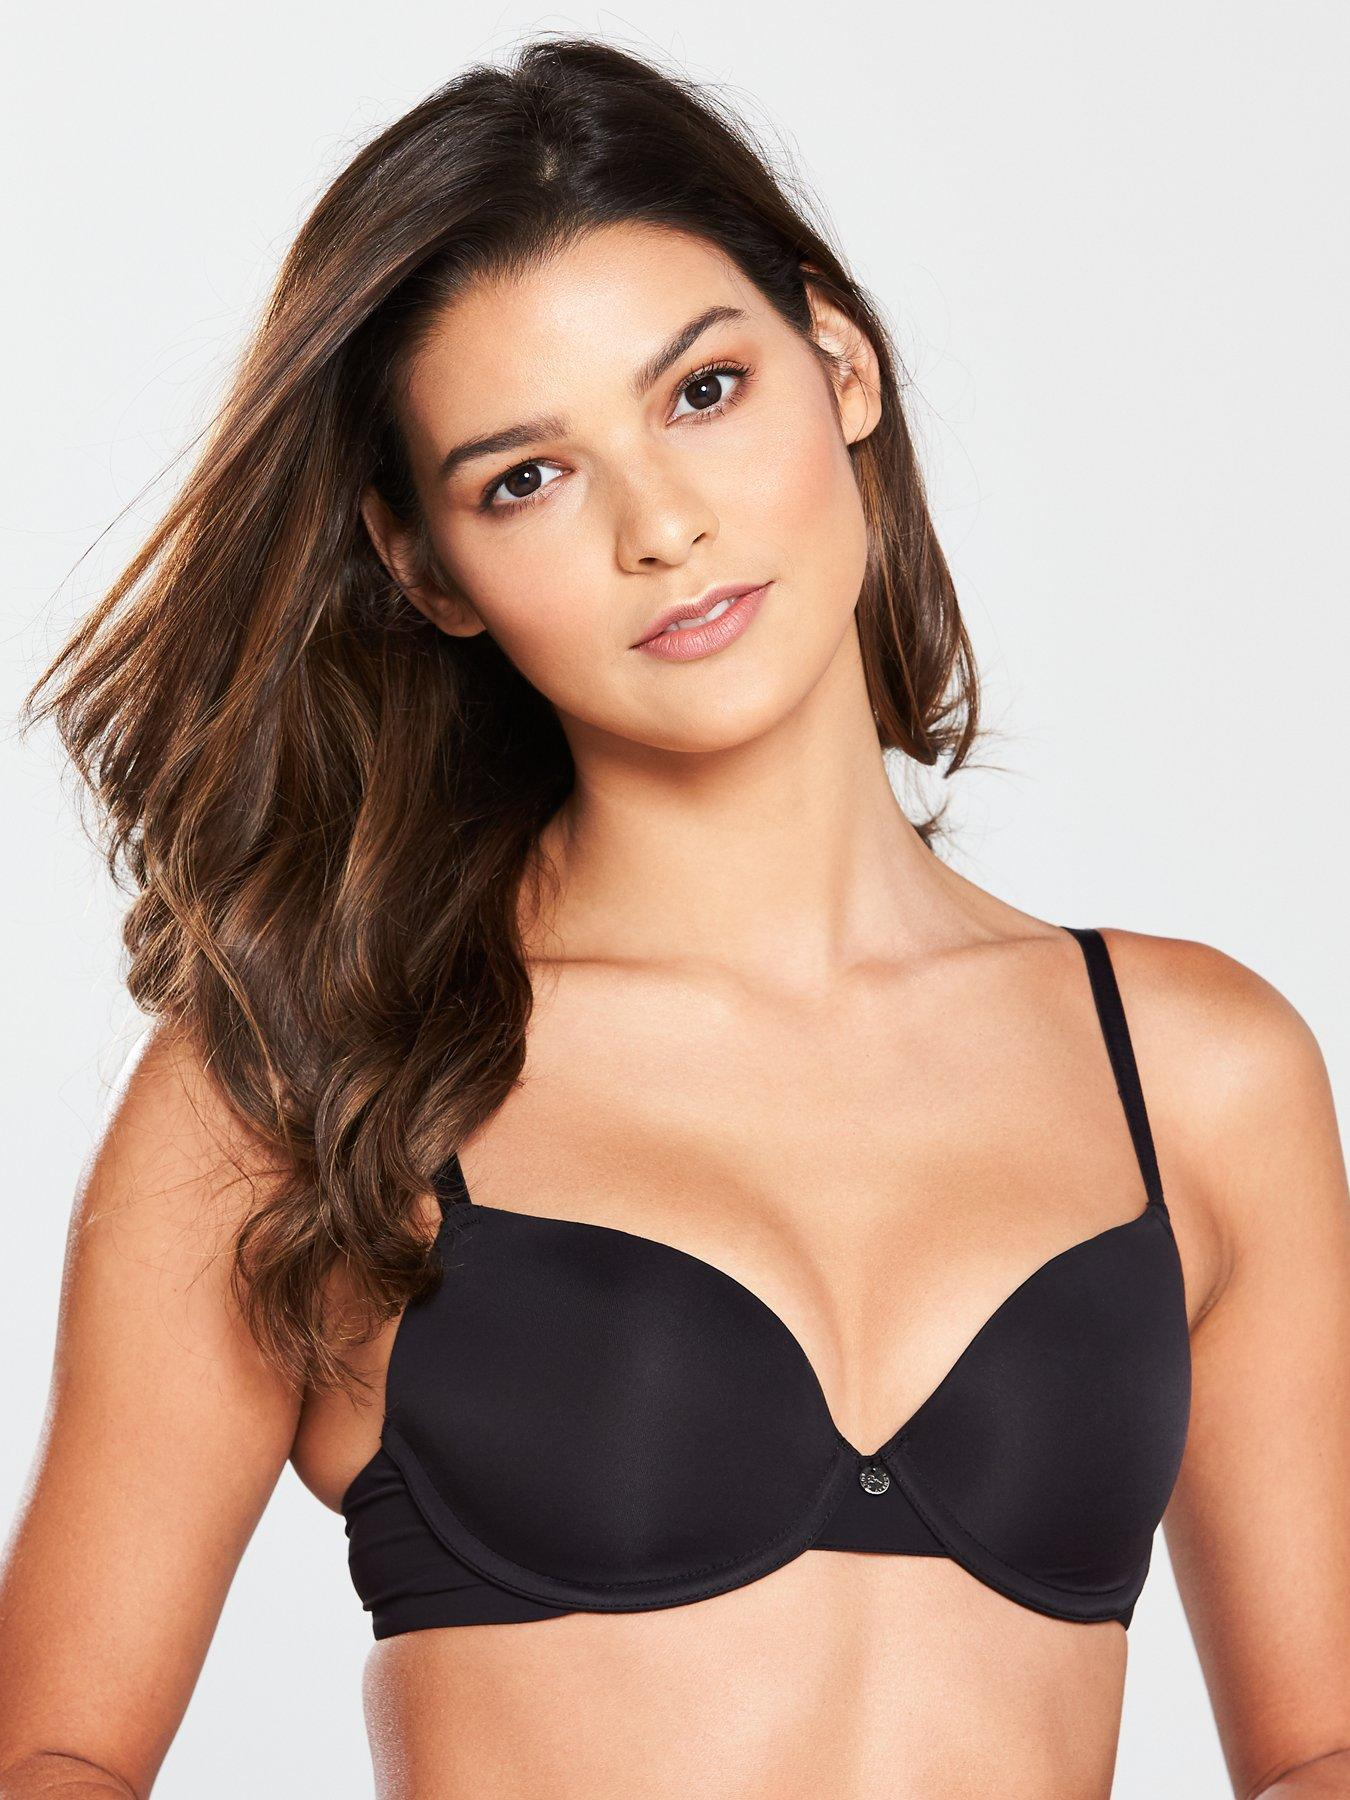 Outlet Laura 38B Only Strapless Bra Built-in Enhancement Lovely Color B Cup 38